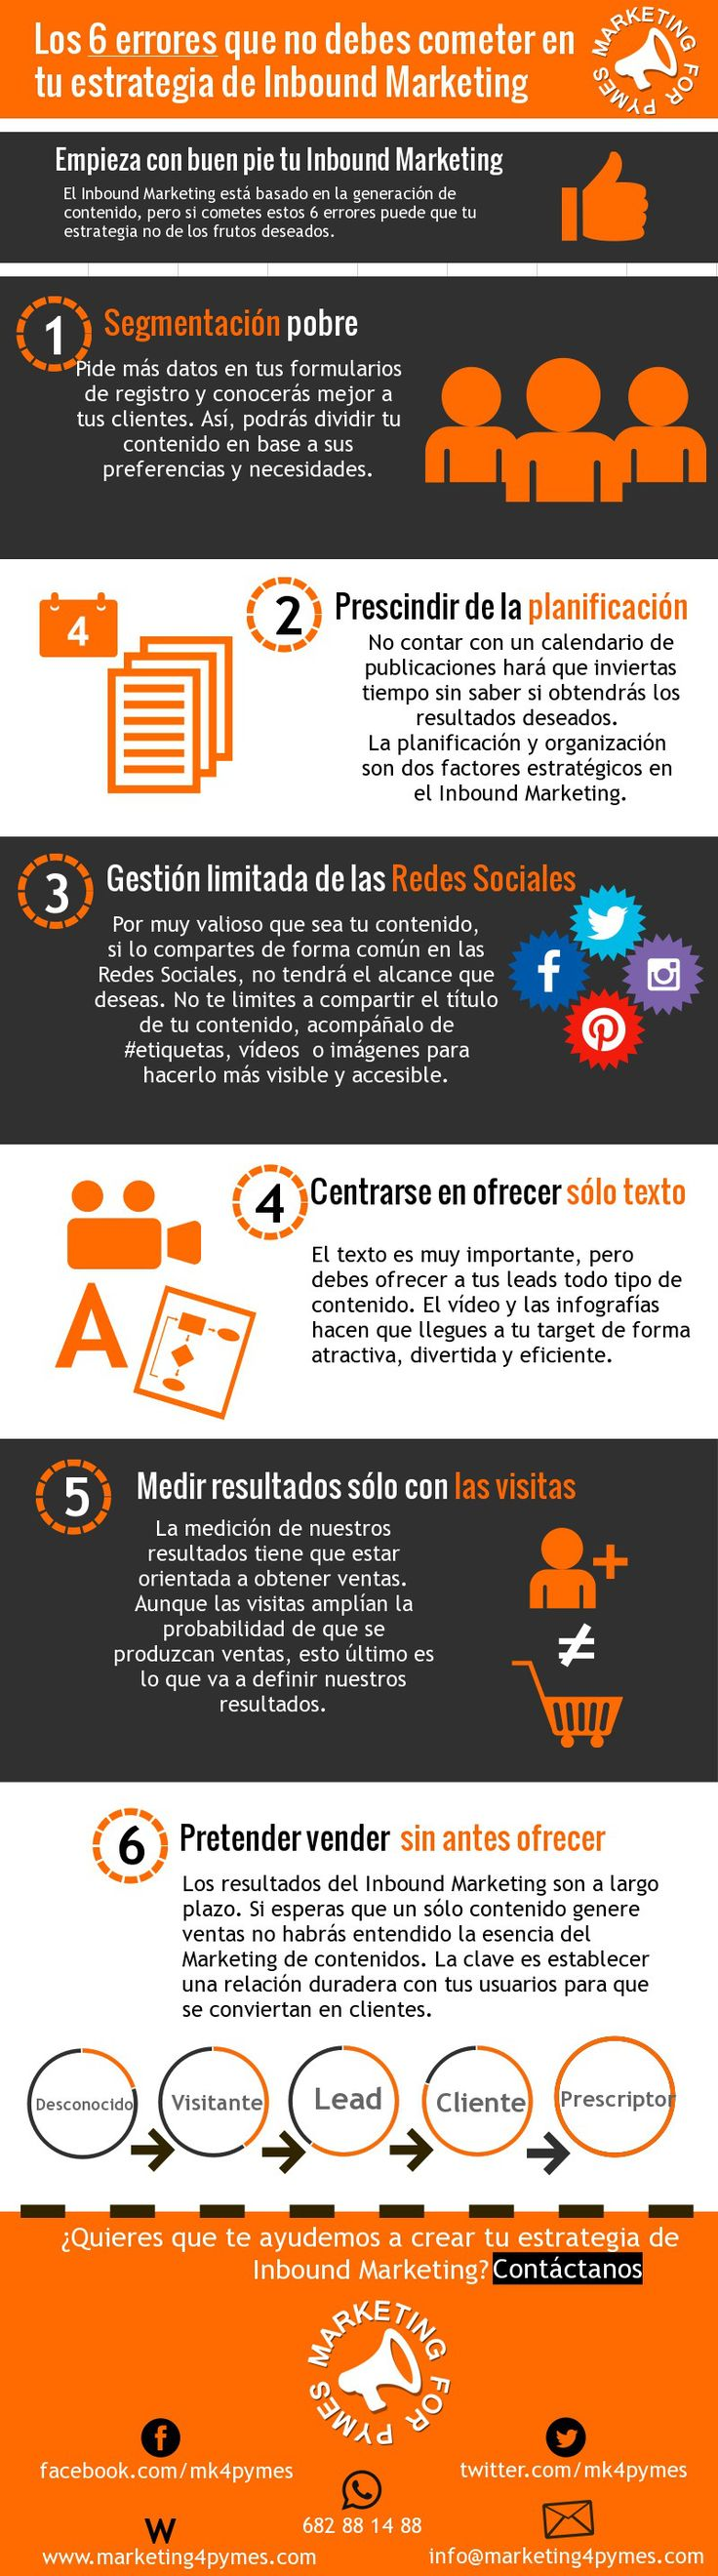 6 errores a evitar en tu estrategia de Inbound Marketing